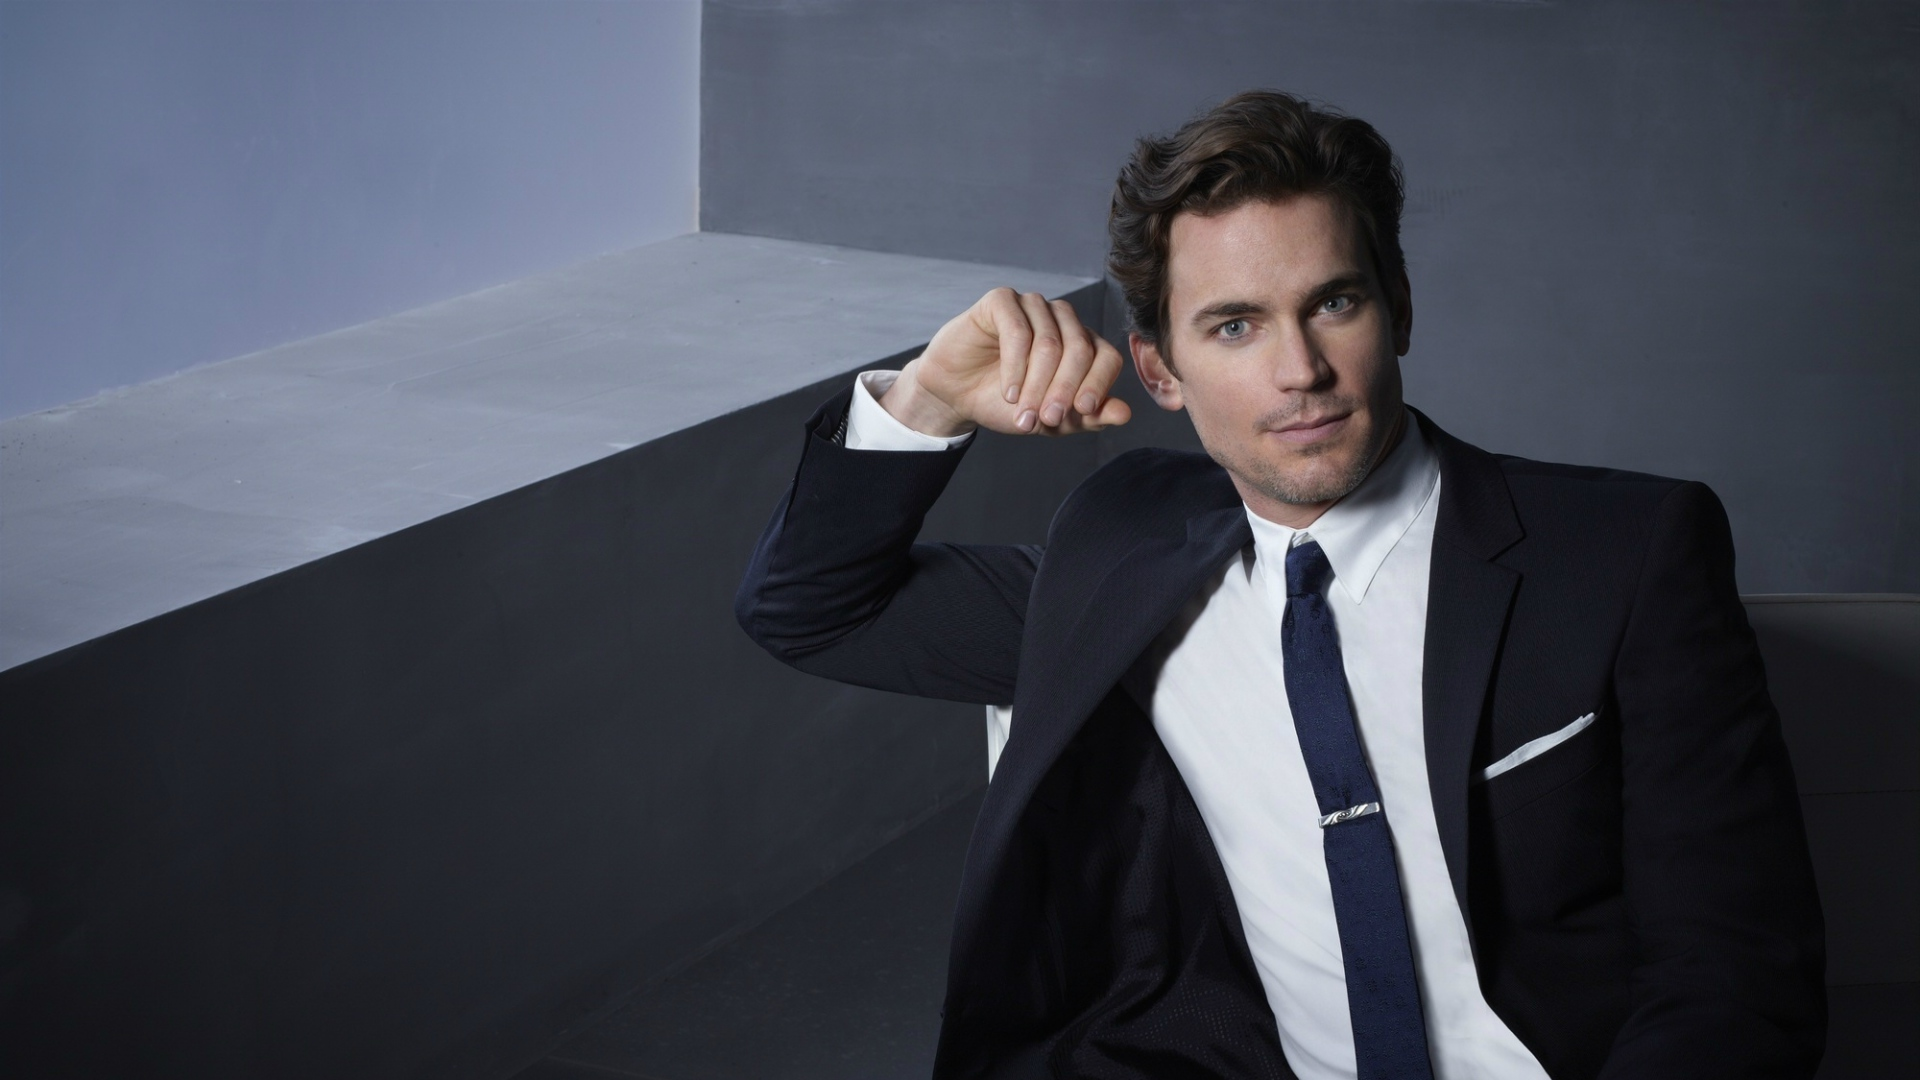 download wallpaper 1920x1080 matthew bomer, brunette, tuxedo, room